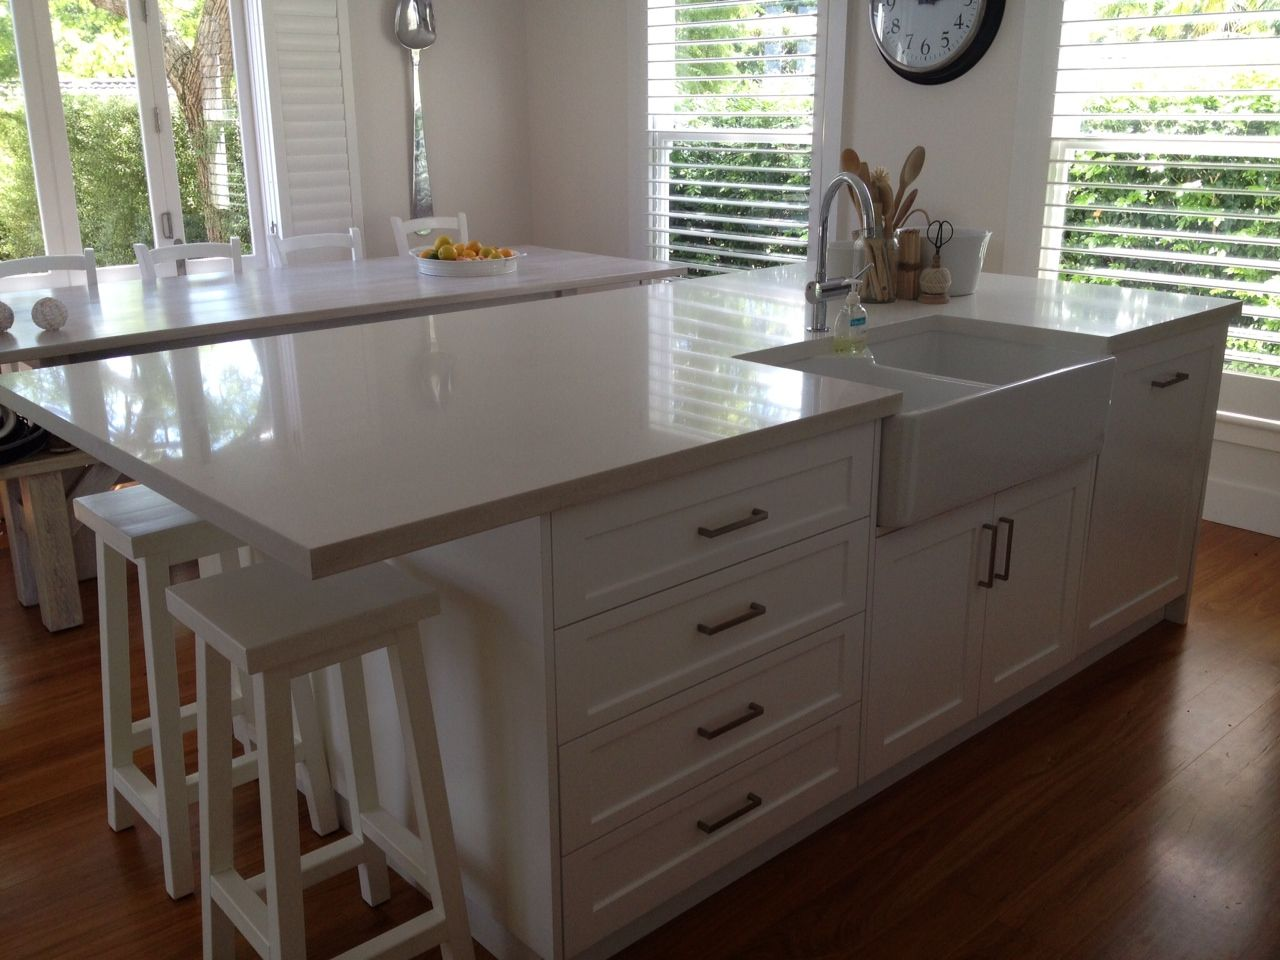 kitchen island with sink and seating | Butler sink kitchen island Sydney |  Blog Kitchenkraft